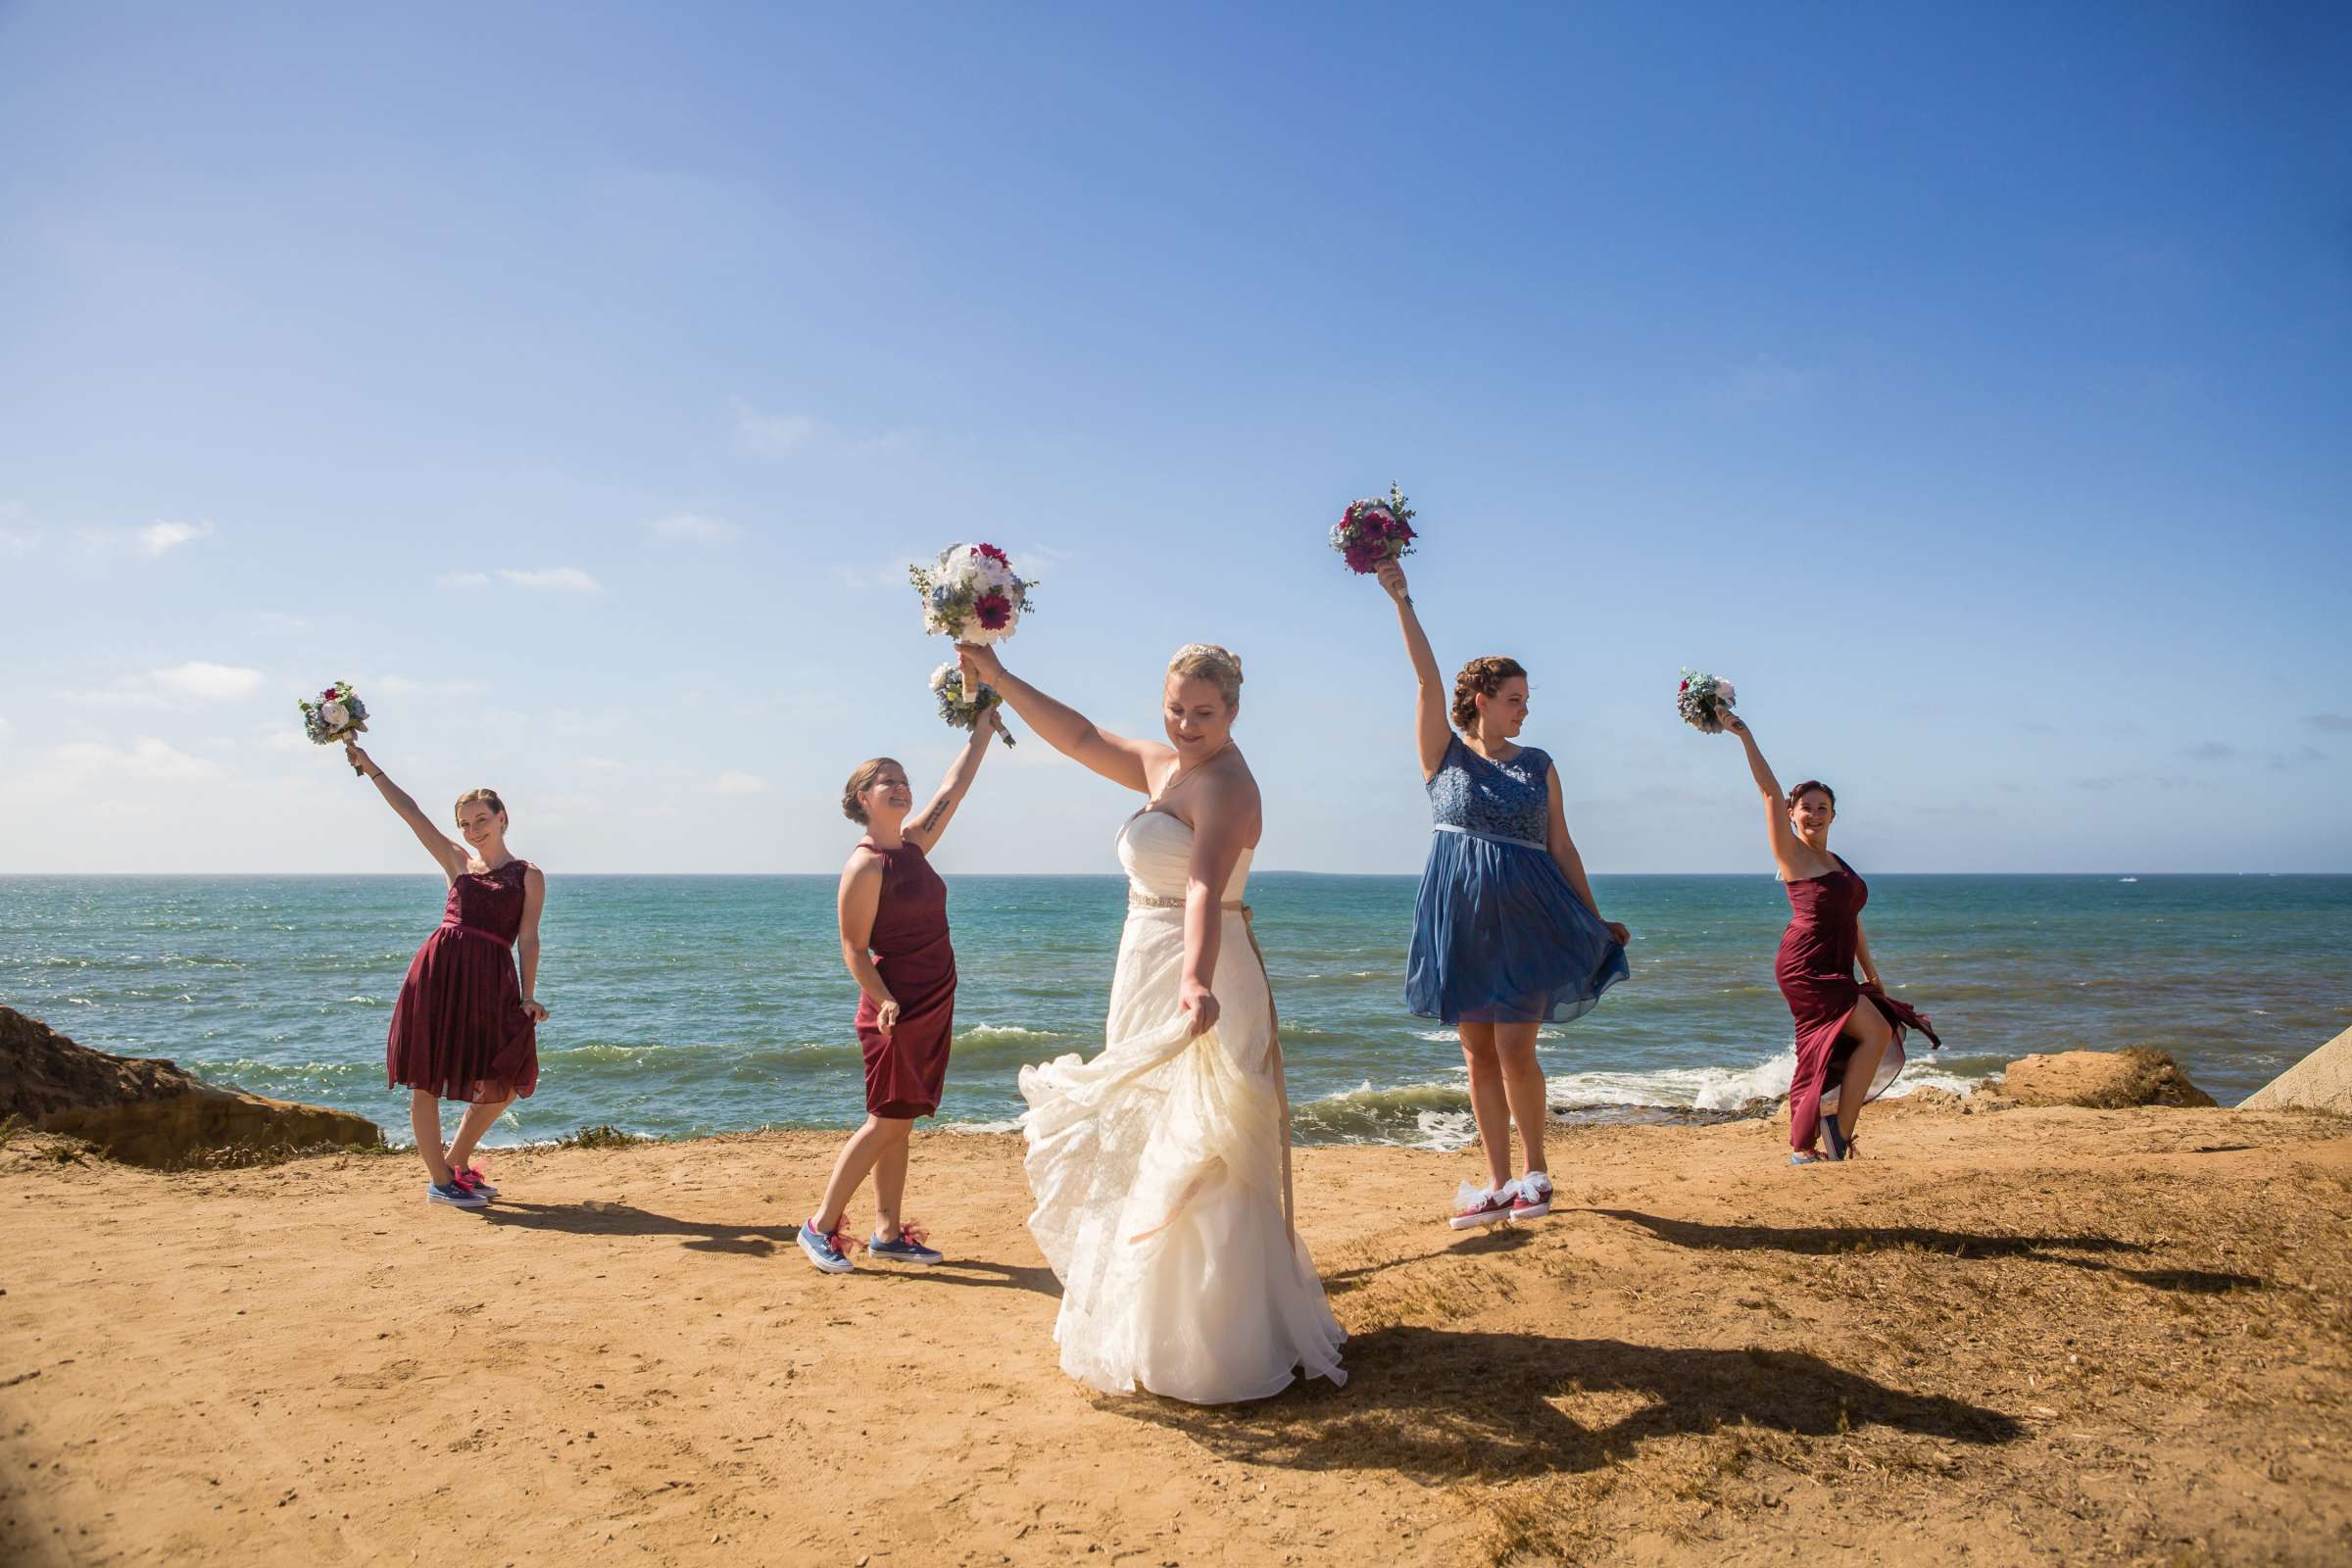 The Inn at Sunset Cliffs Wedding, Melinda and Benjamin Wedding Photo #13 by True Photography